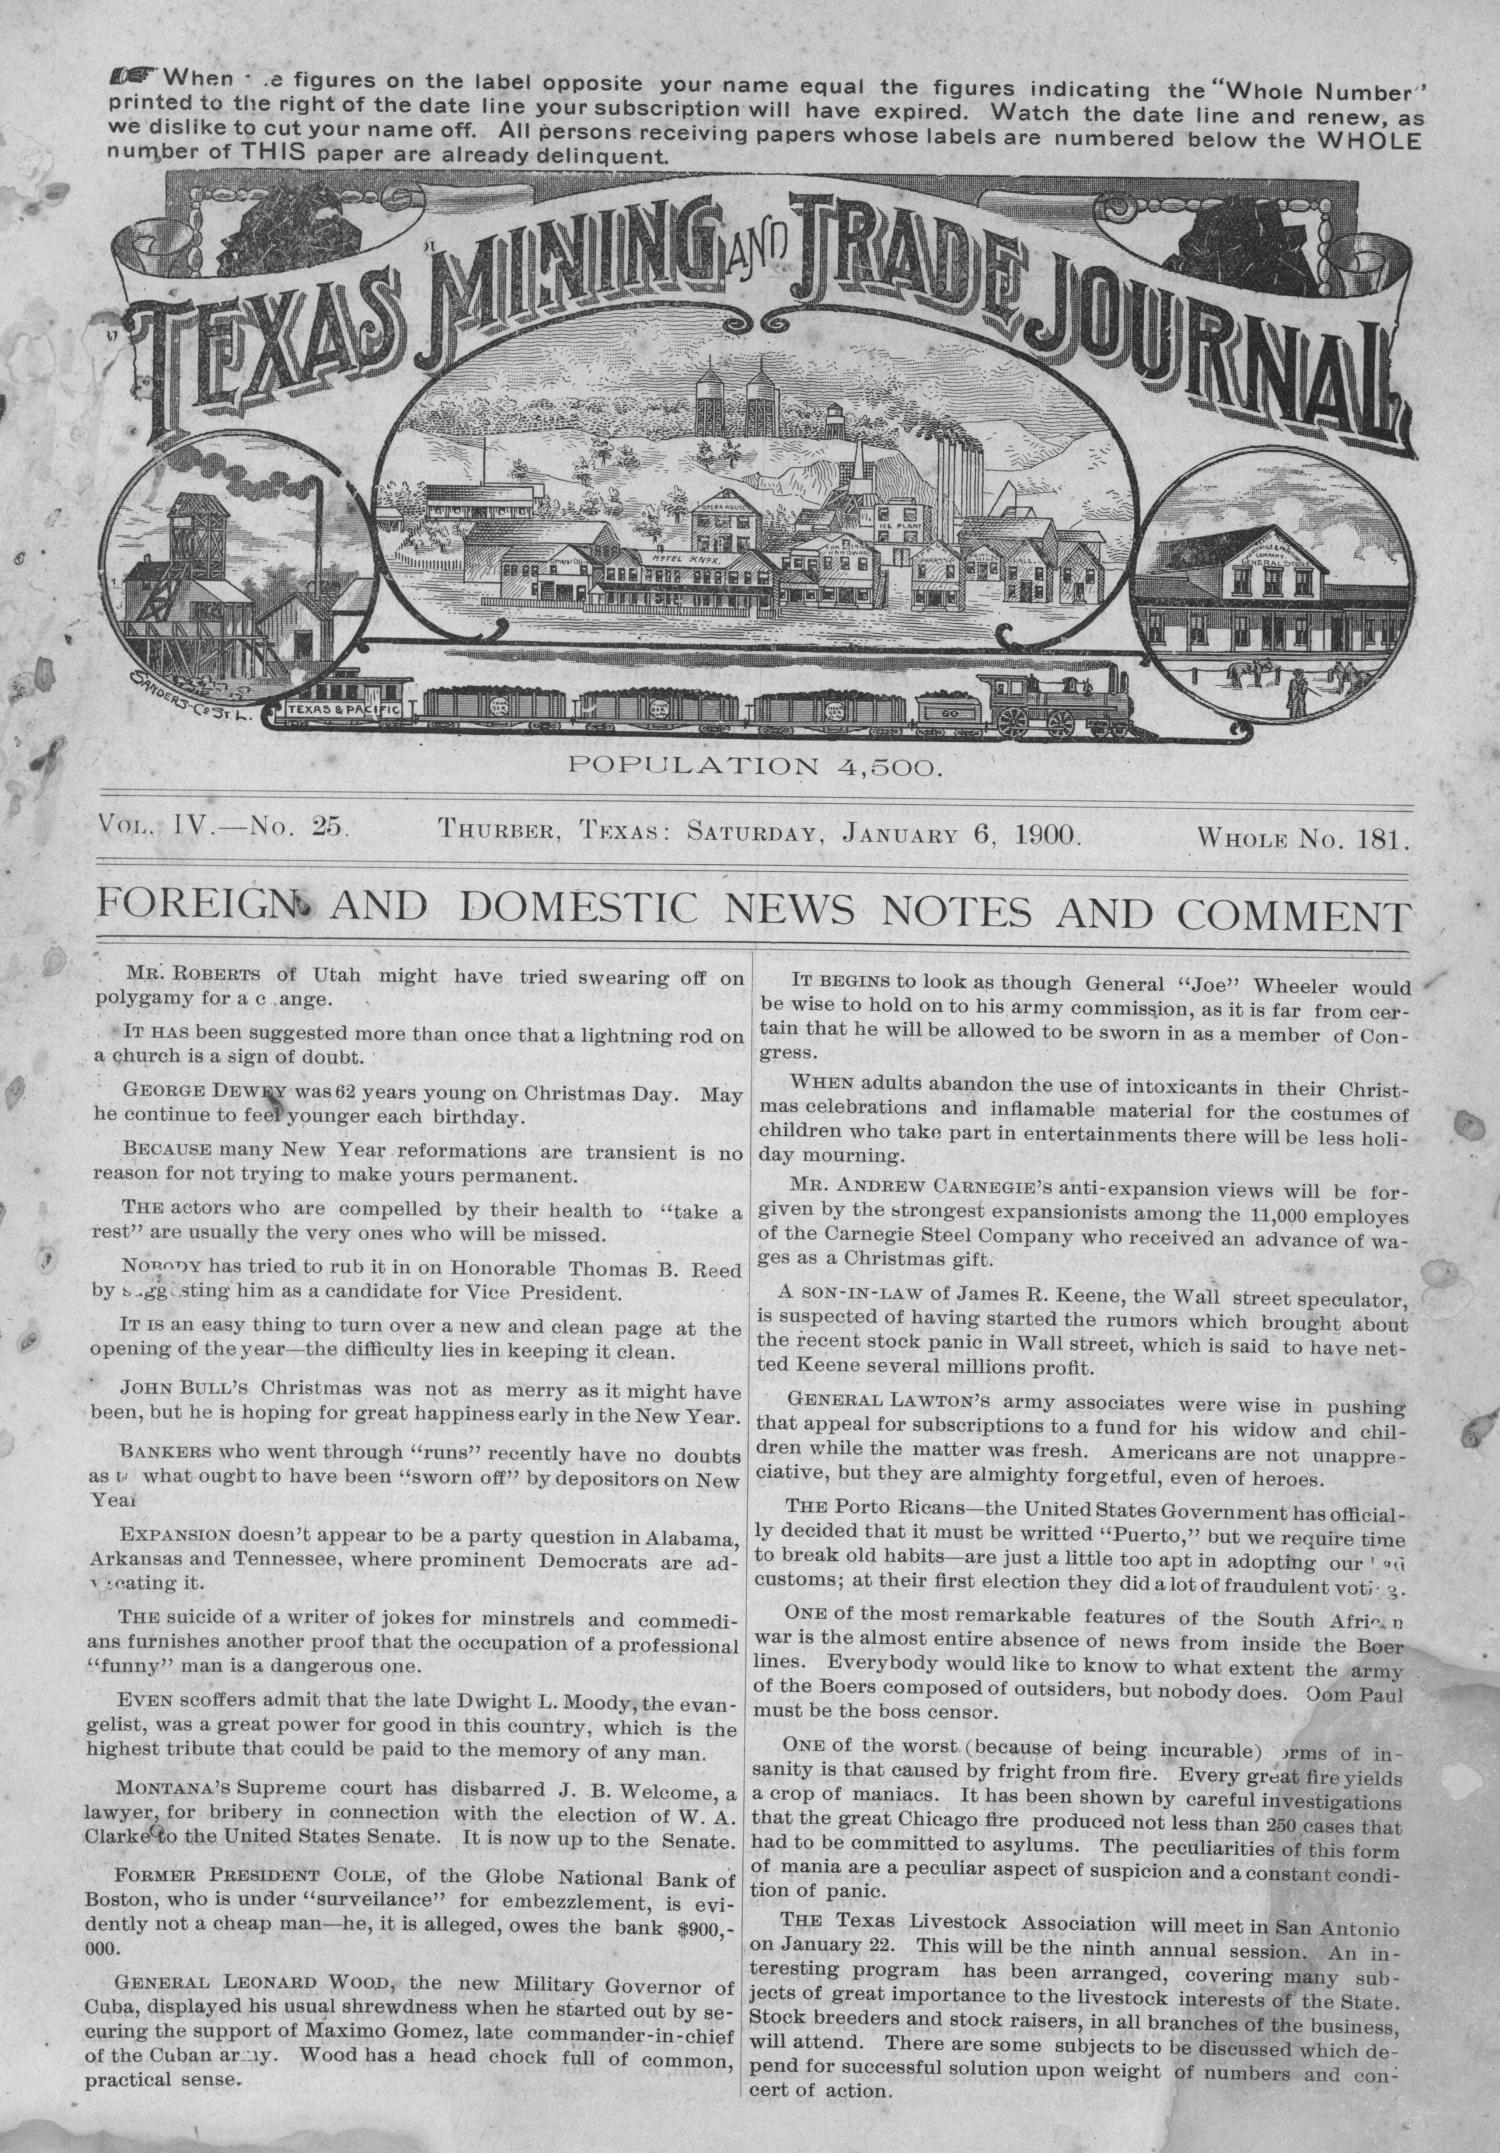 Texas Mining and Trade Journal, Volume 4, Number 25, Saturday, January 6, 1900                                                                                                      1